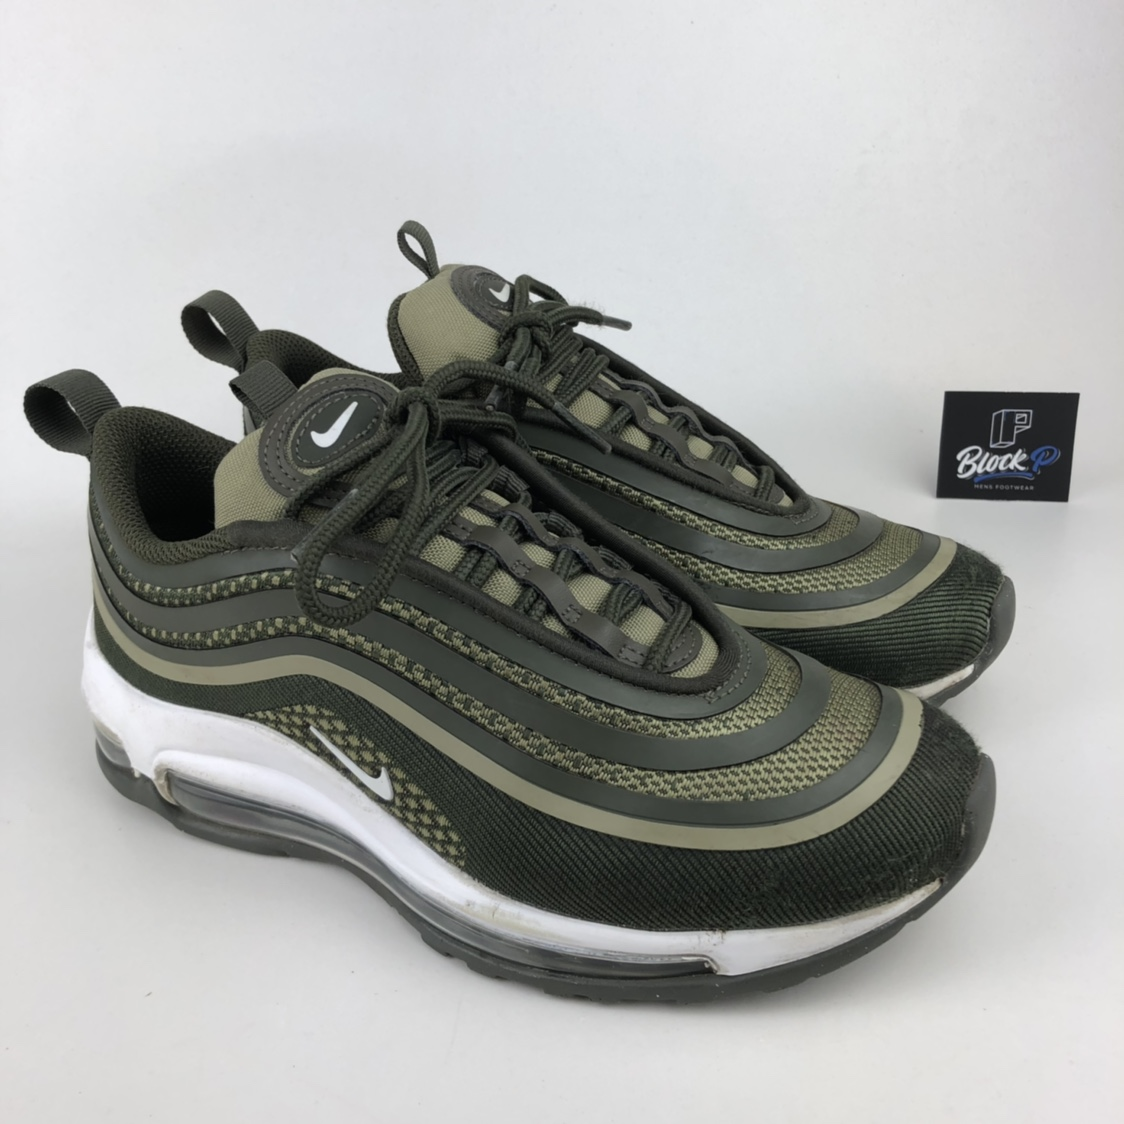 sneakers for cheap best sneakers authorized site Nike Air Max 97 Black Summit White Platinum Tint Girls eBay